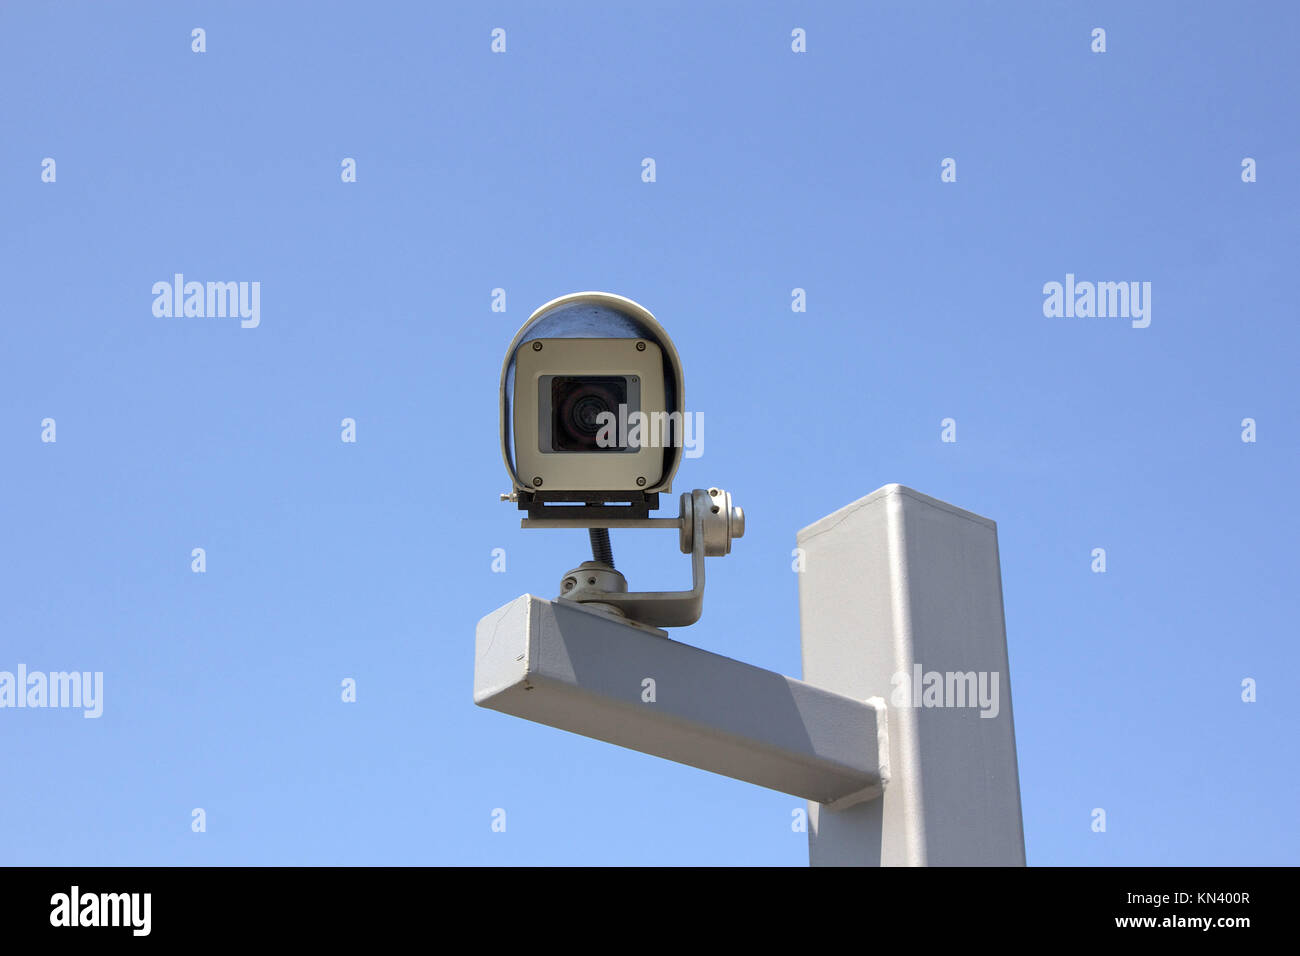 Modern outdoor surveillance camera aiming straight at the beholder. - Stock Image